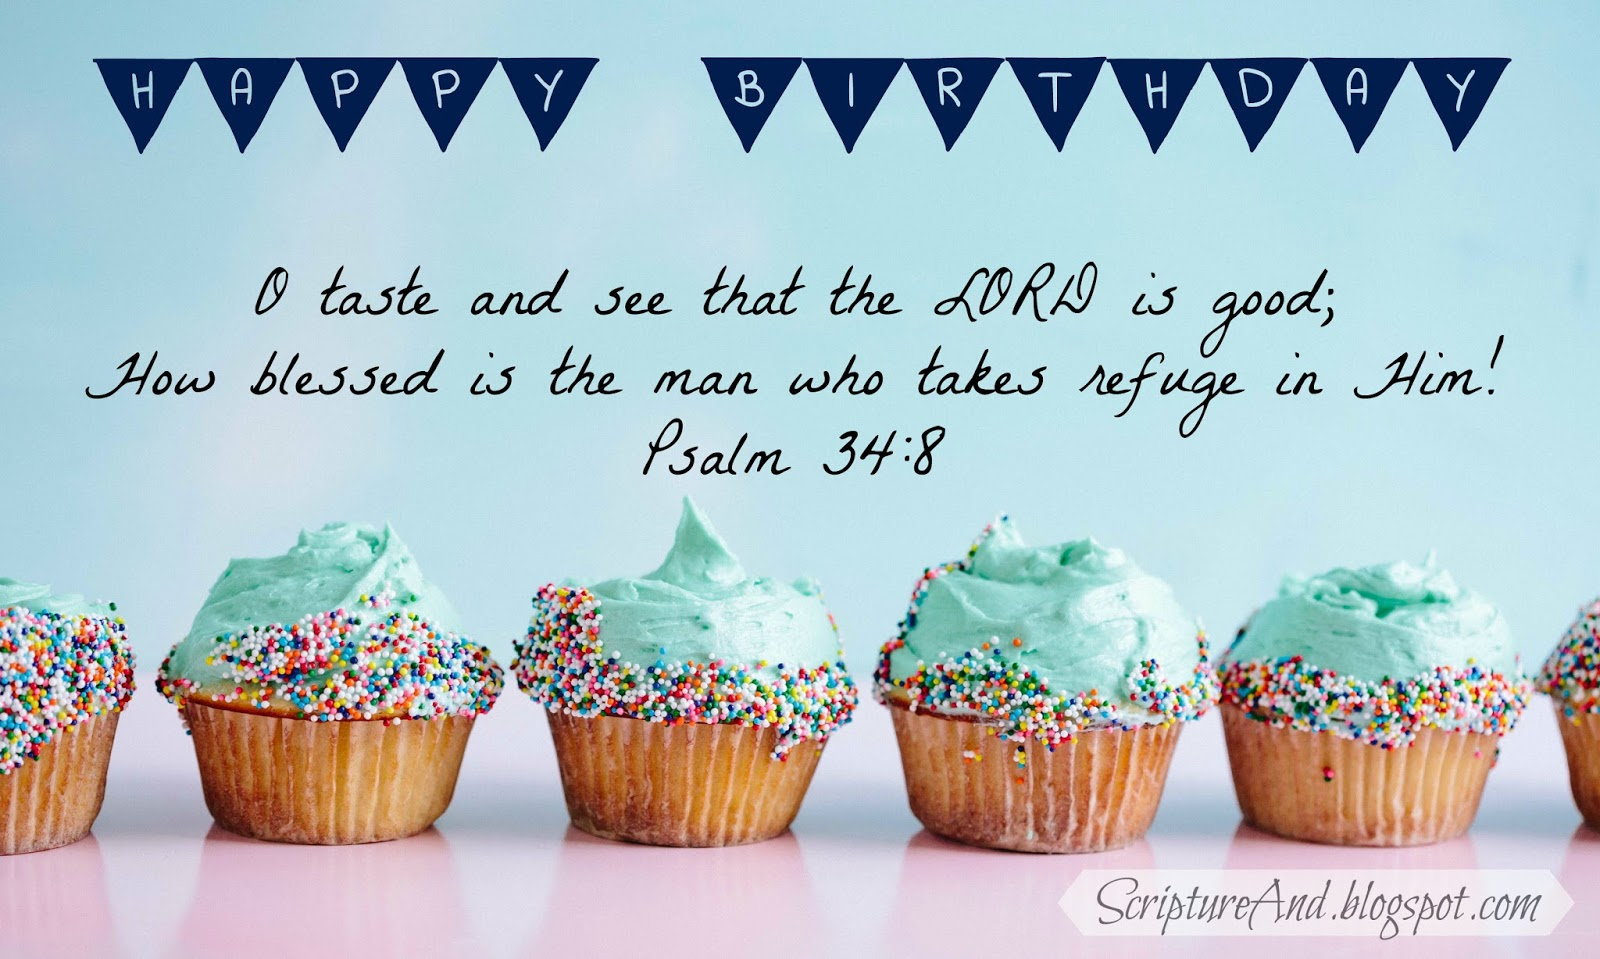 Scripture and free birthday images with bible verses happy birthday image with cupcakes and psalm 348 from scriptureandspot kristyandbryce Gallery